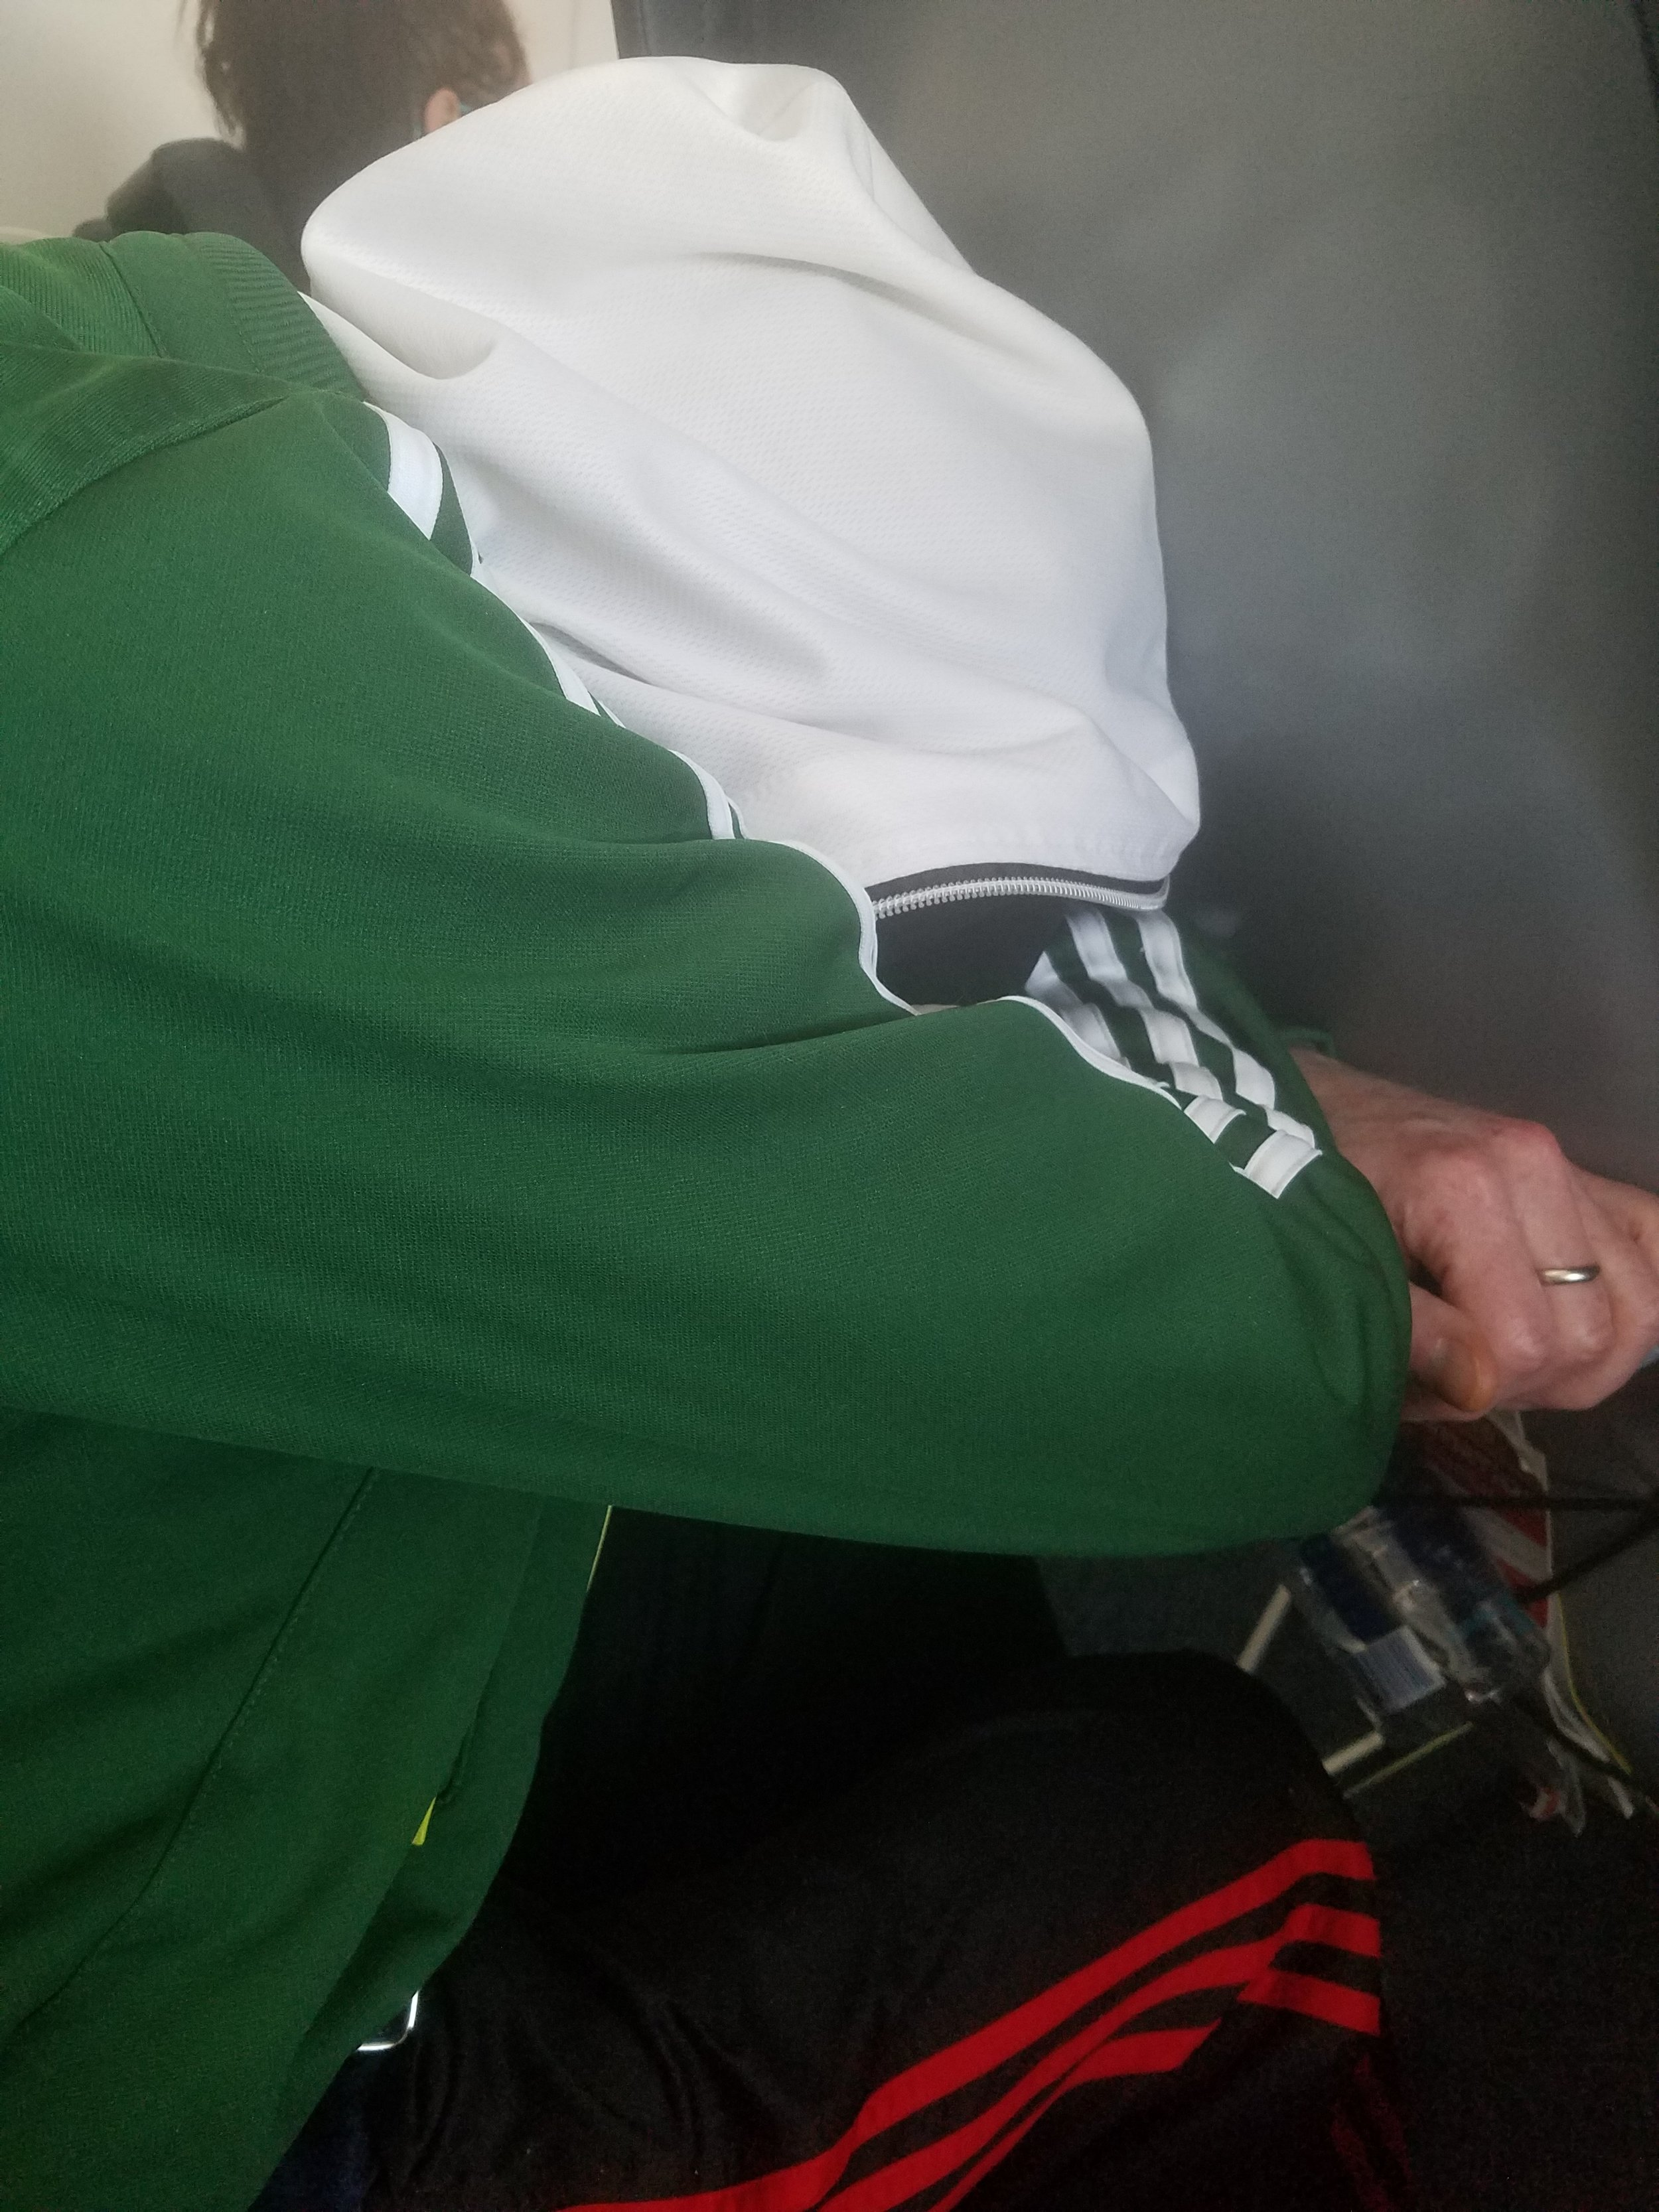 - You may see the young man taking a nap for the duration of the flight.What you can't know is that the energy it took to get from the doors of the airport an hour ago to this seat were more than he has in his reserves and that he is now completely depleted.